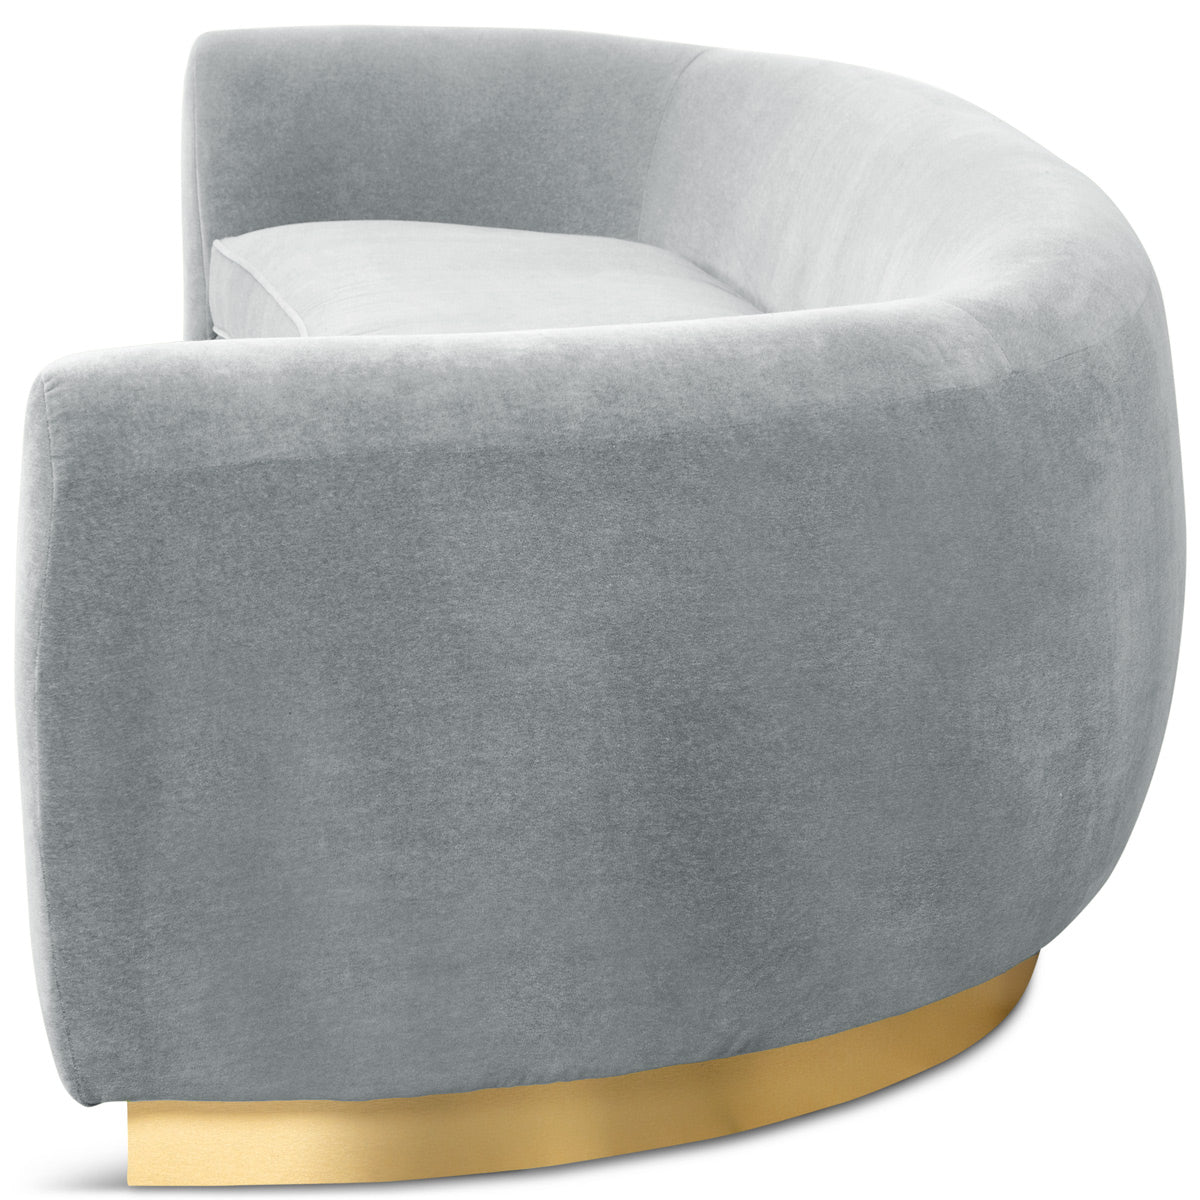 Groovy Chubby Sofa In Mohair Modshop Gmtry Best Dining Table And Chair Ideas Images Gmtryco